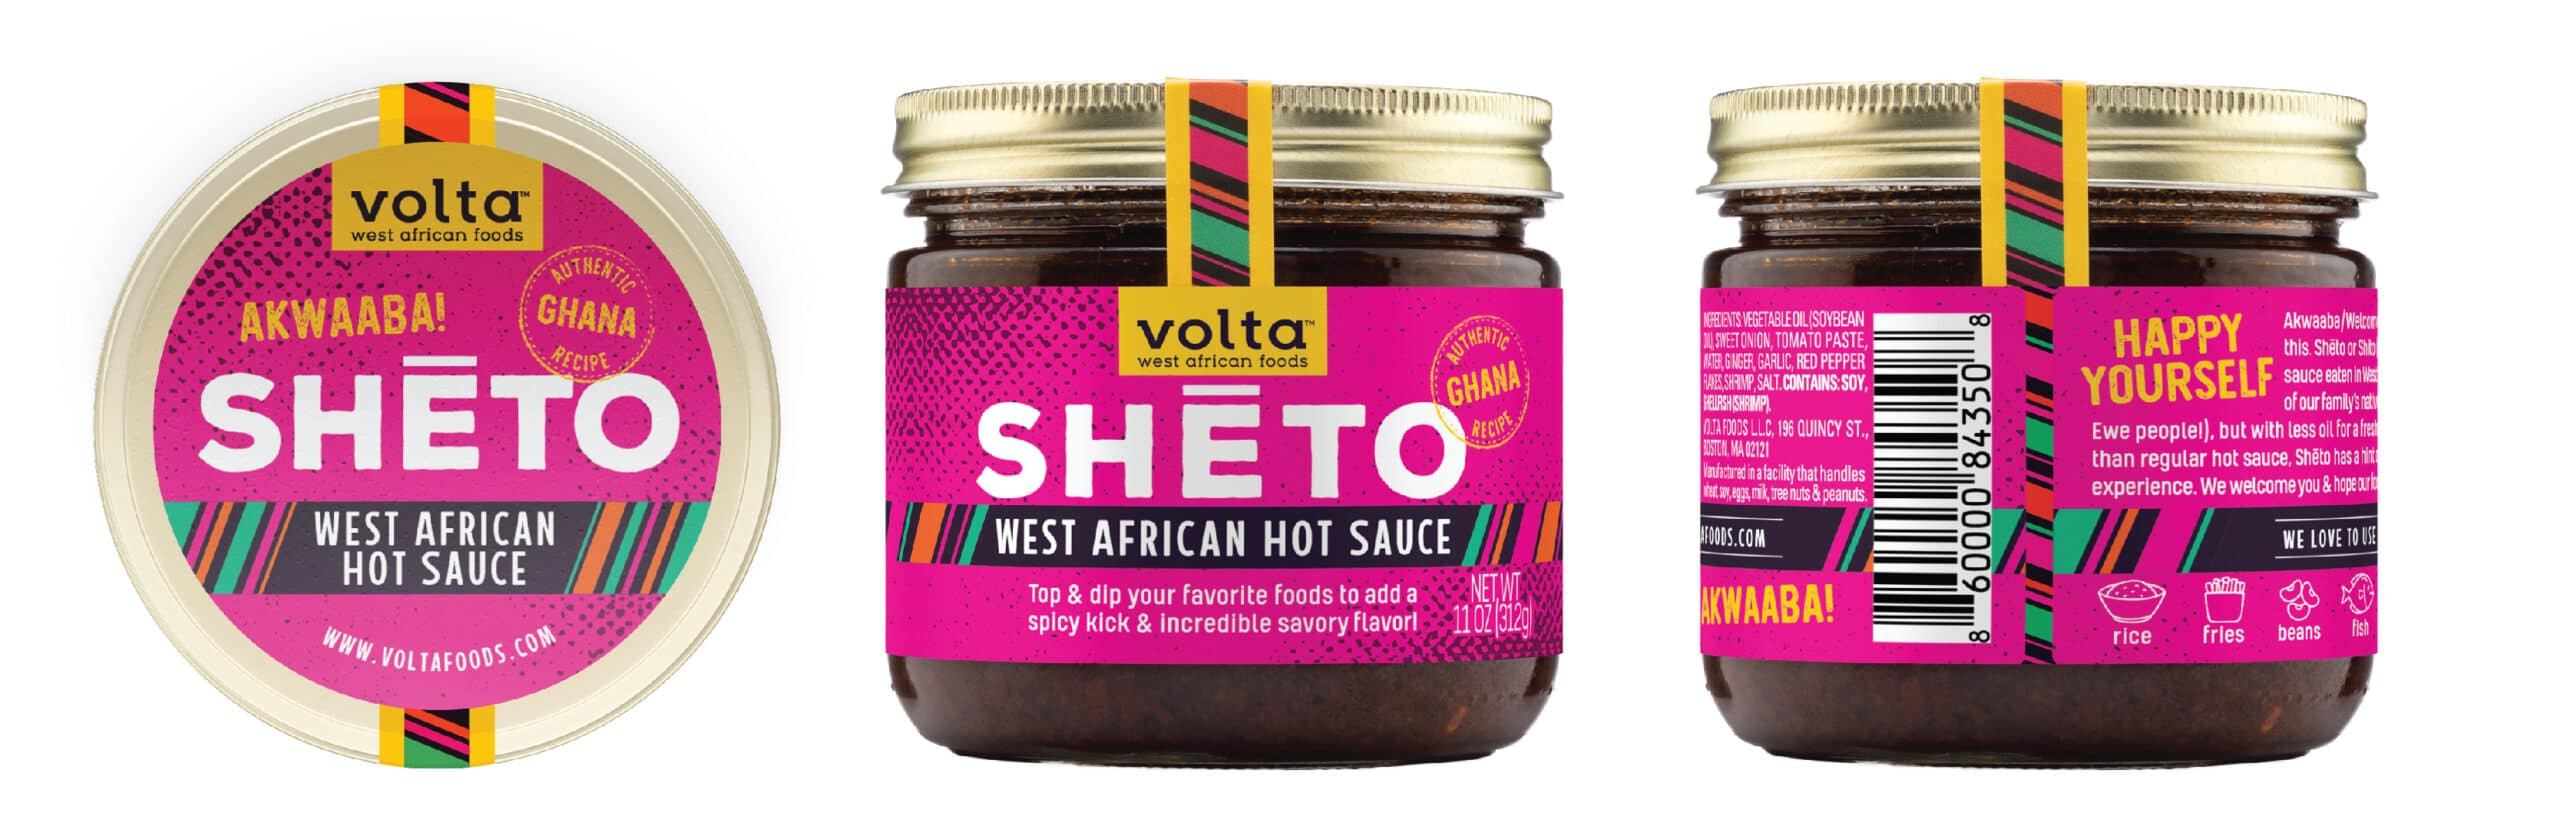 Shēto West African Hot Sauce Jar Condiment Packaging Design